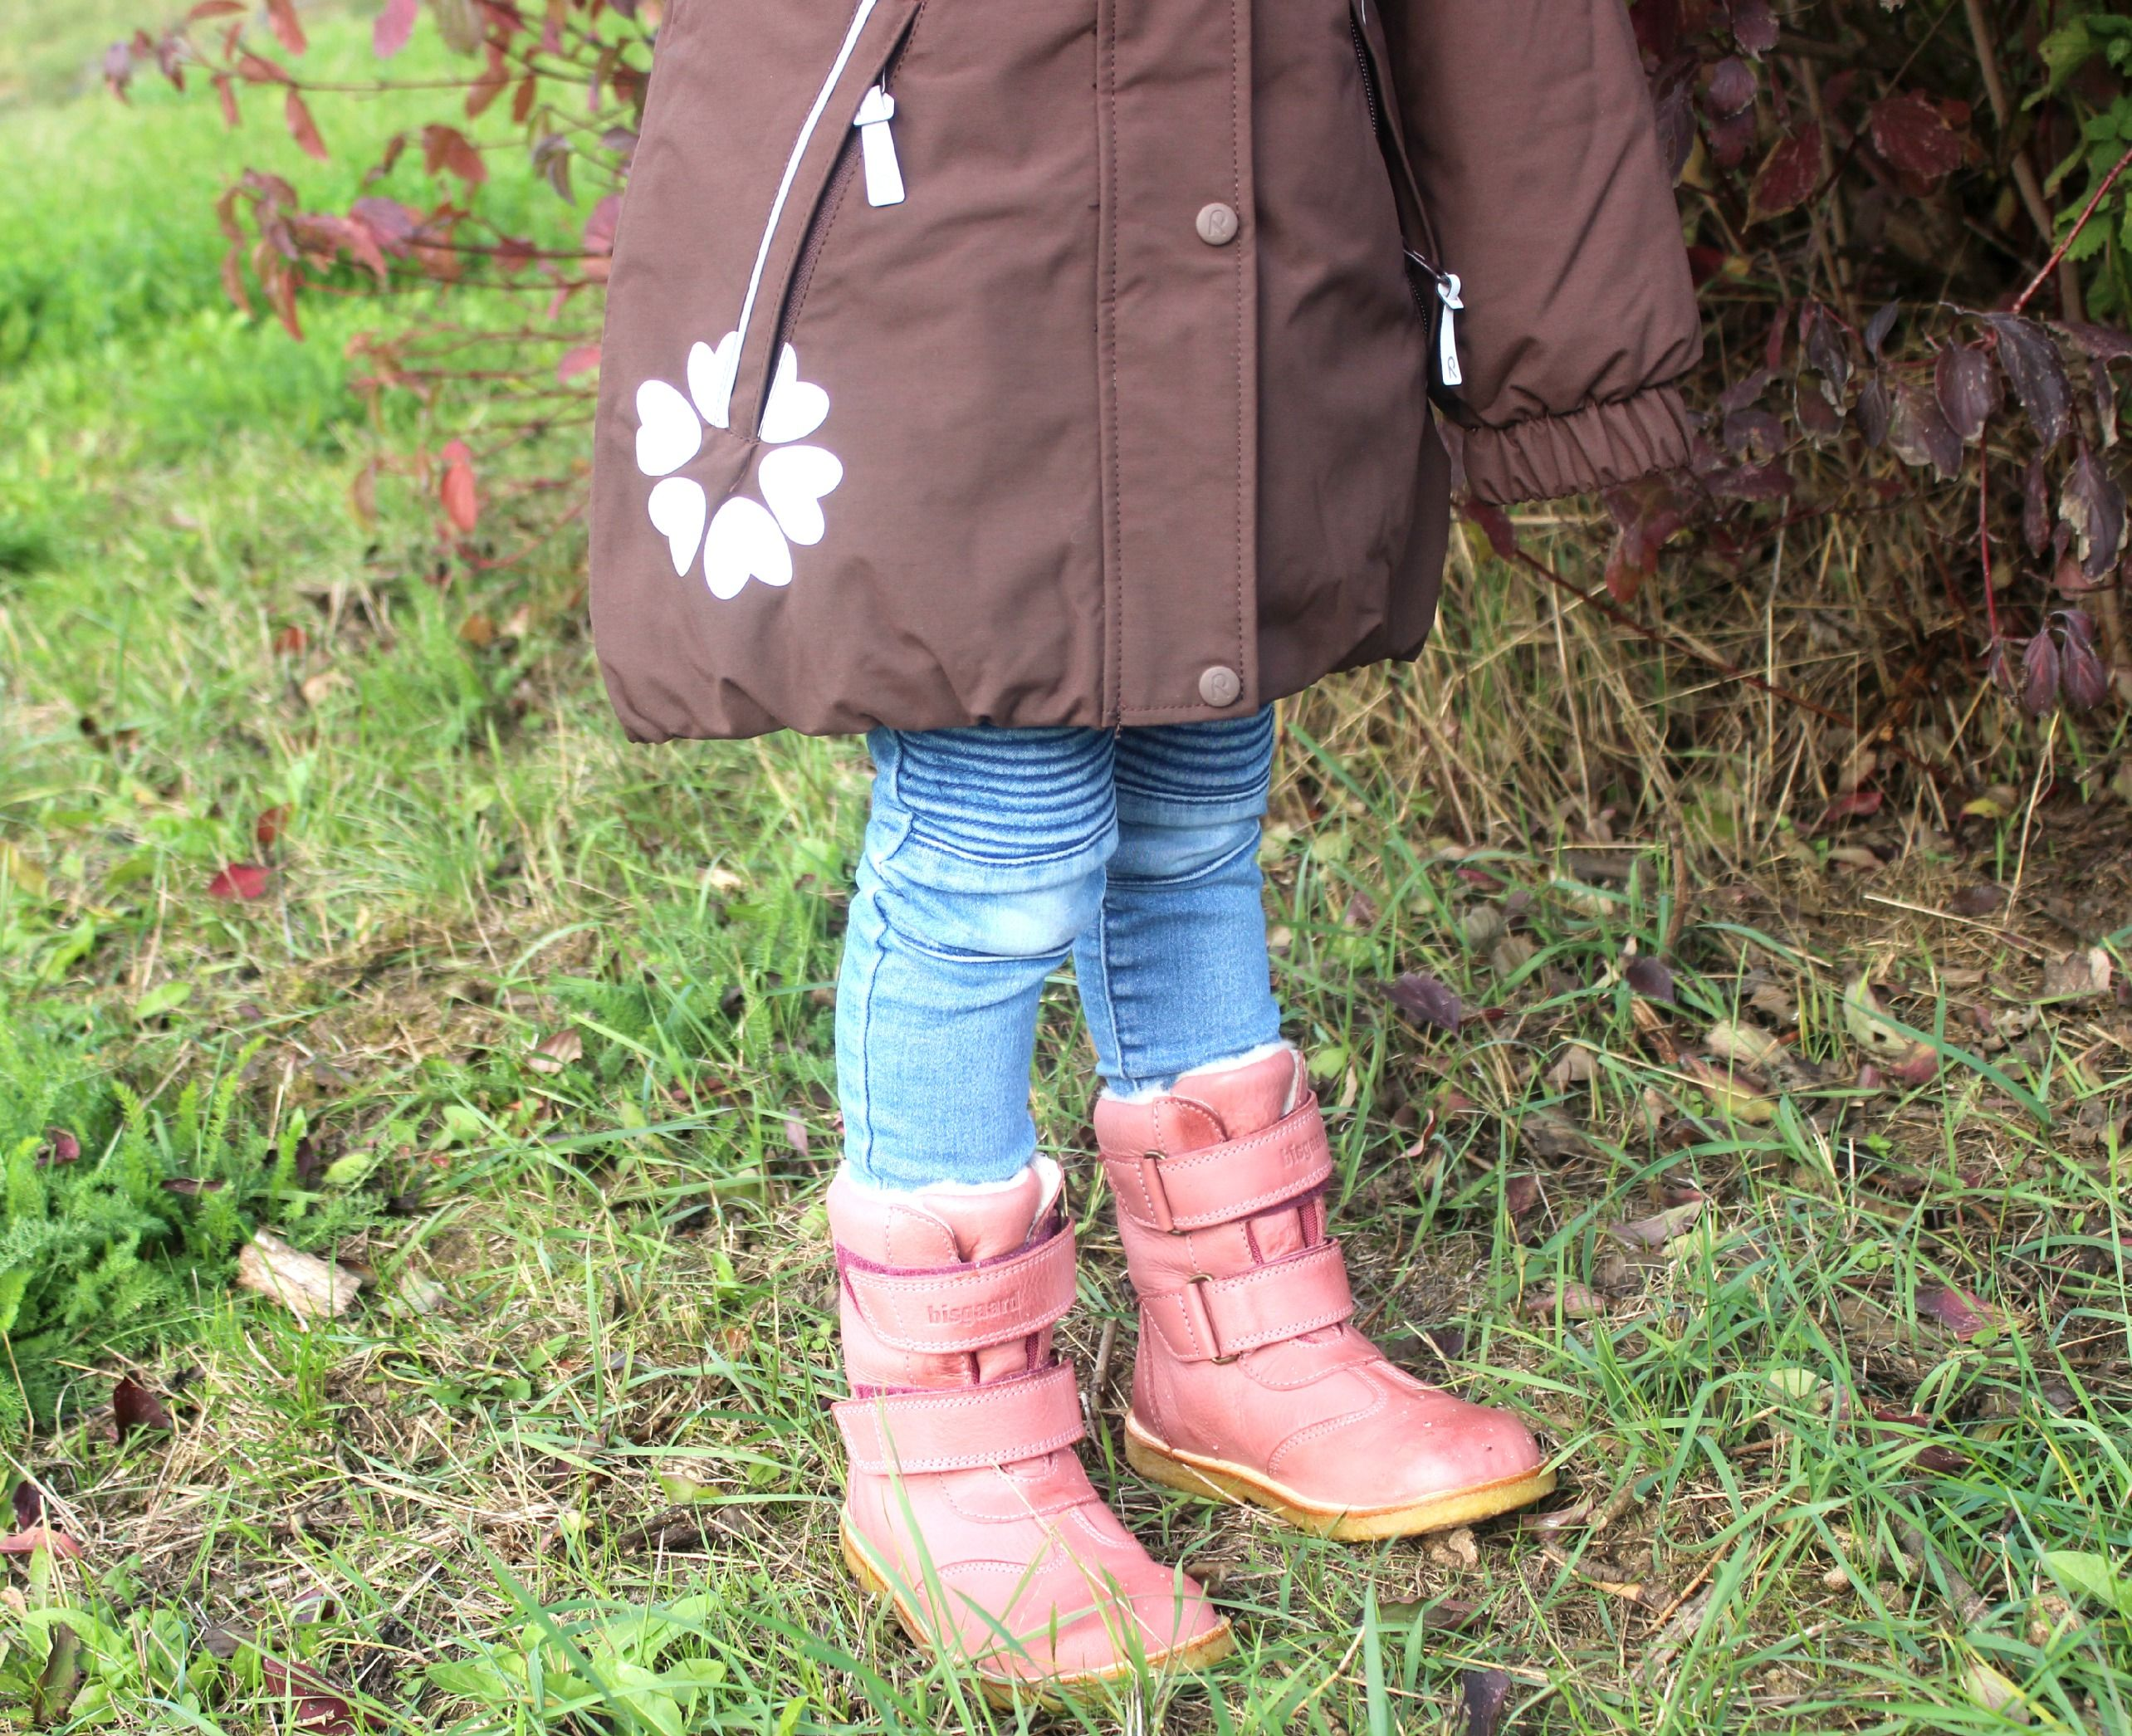 Bisgaard Winterstiefel  http://lifestylemommy.me/2015/10/29/fashion-for-kids-shopvorstellung-growingfeet-online-schuhe-kaufen/